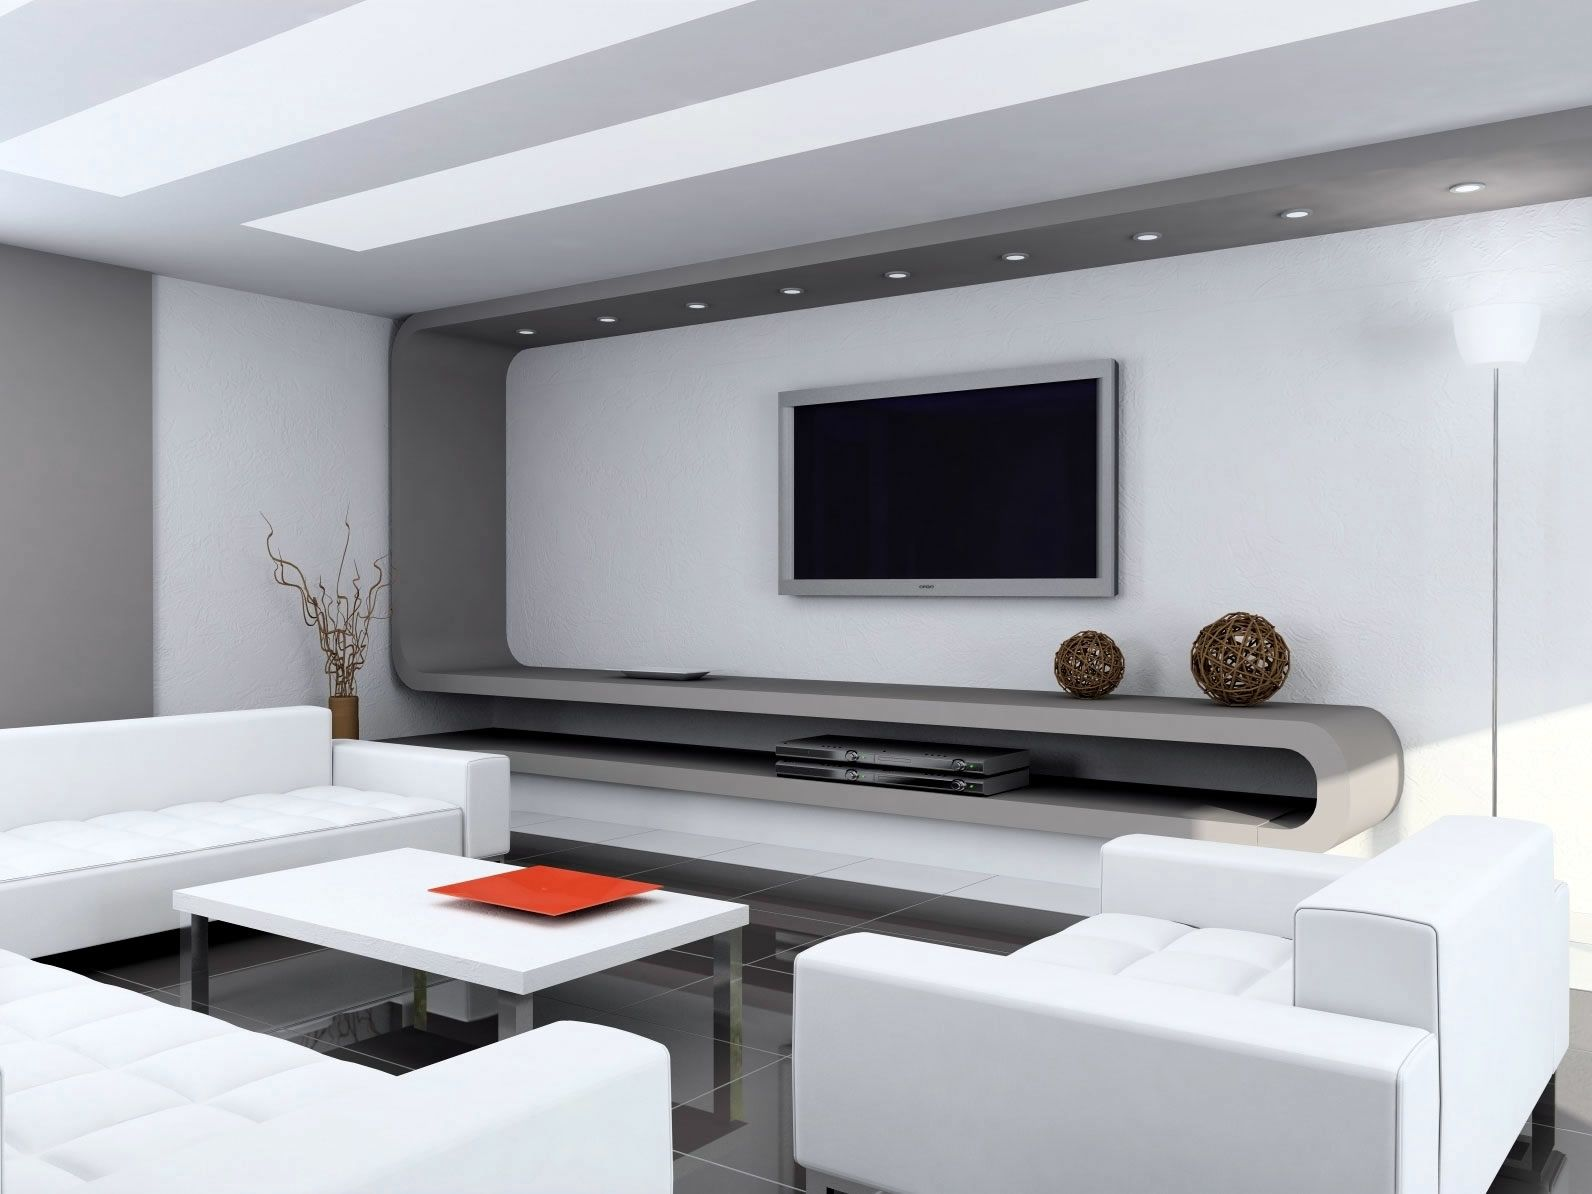 Furniture Minimalist Interior Decoration In Home With Wonderful Tv Wall Units And Modern White Sofas Also Beautiful Table Plus Cool Stainless Legs On